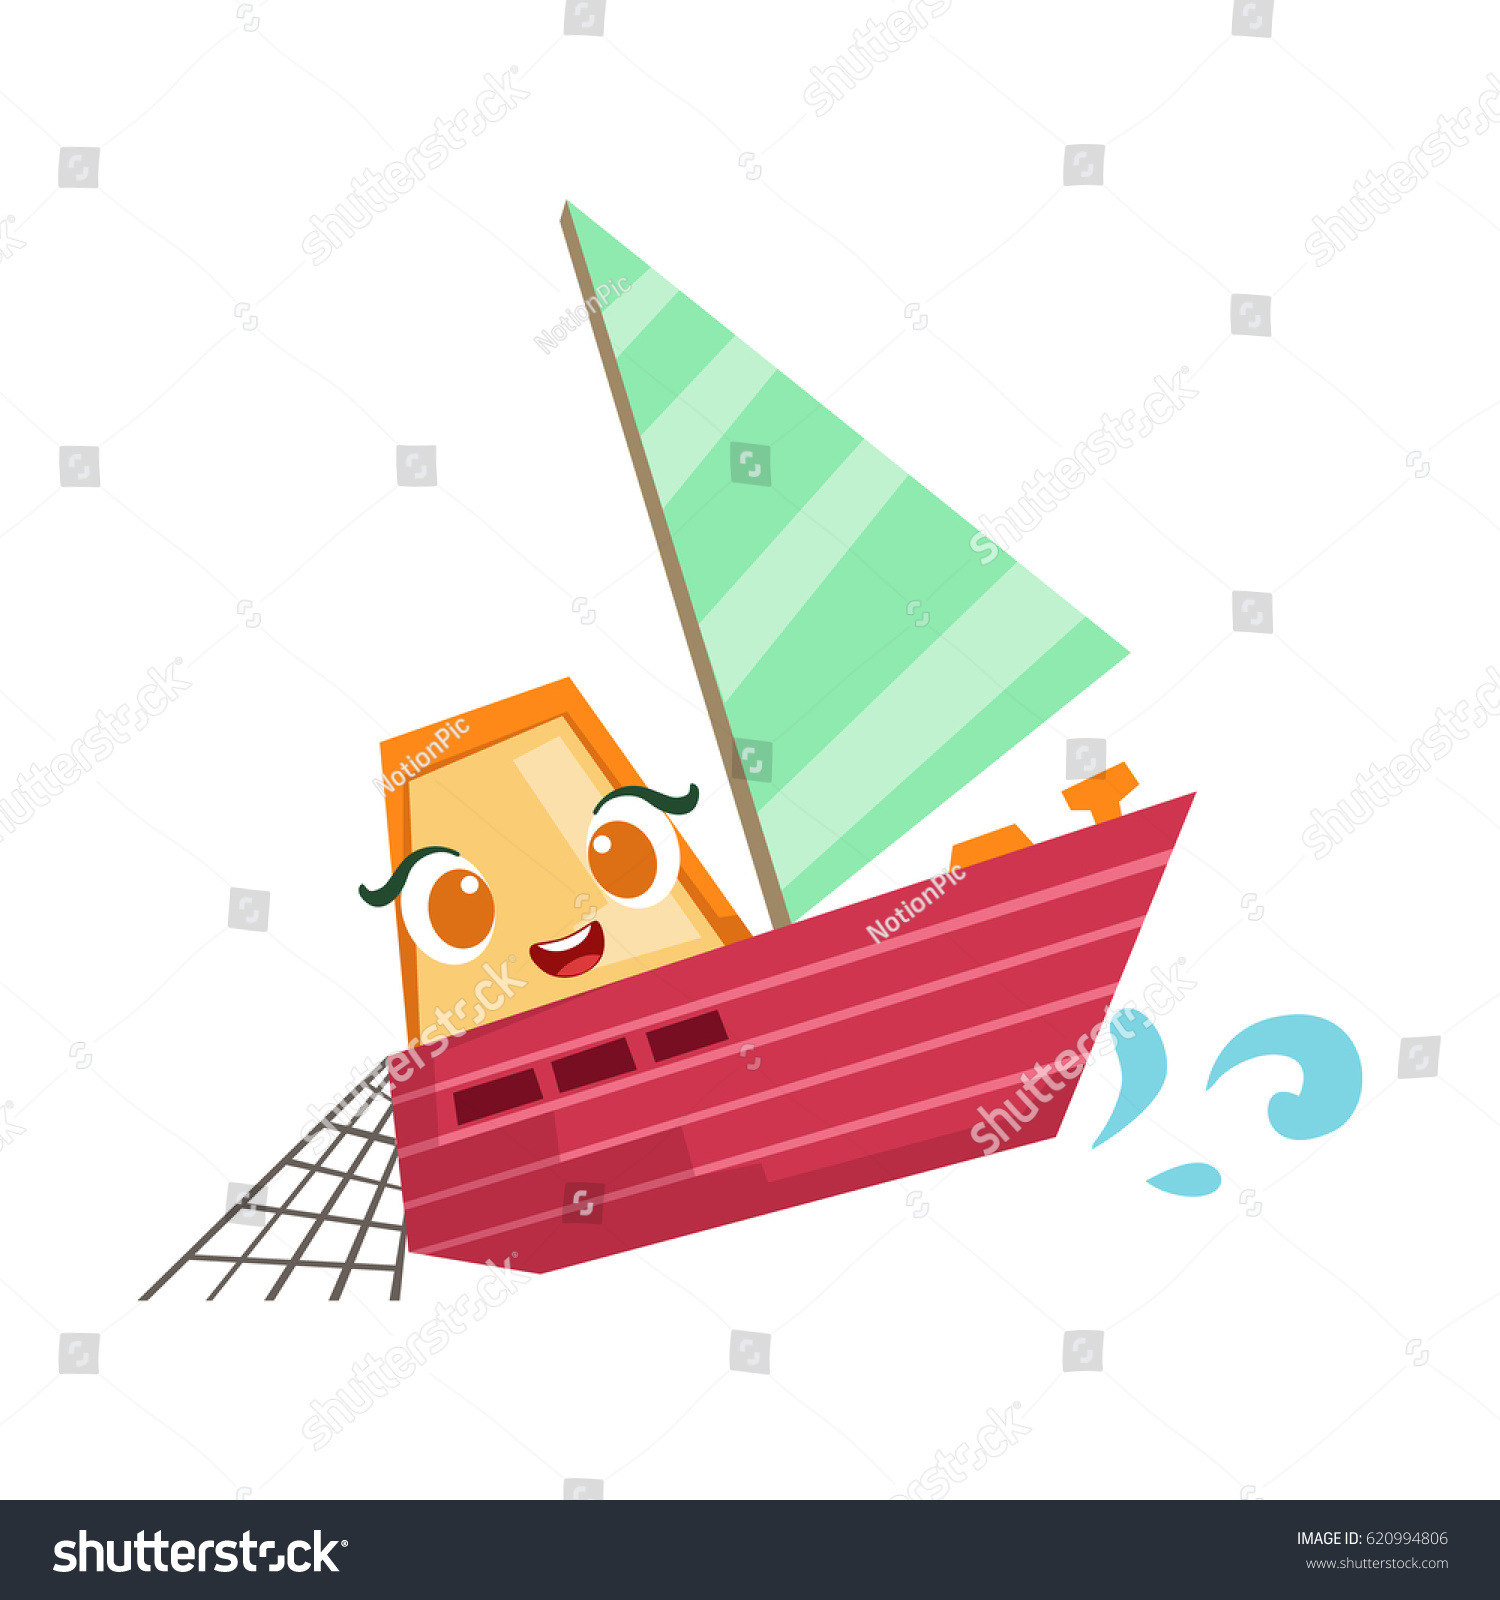 Sailing Fisherman Fishing Boat Cute Girly Stock Vector 620994806 ...